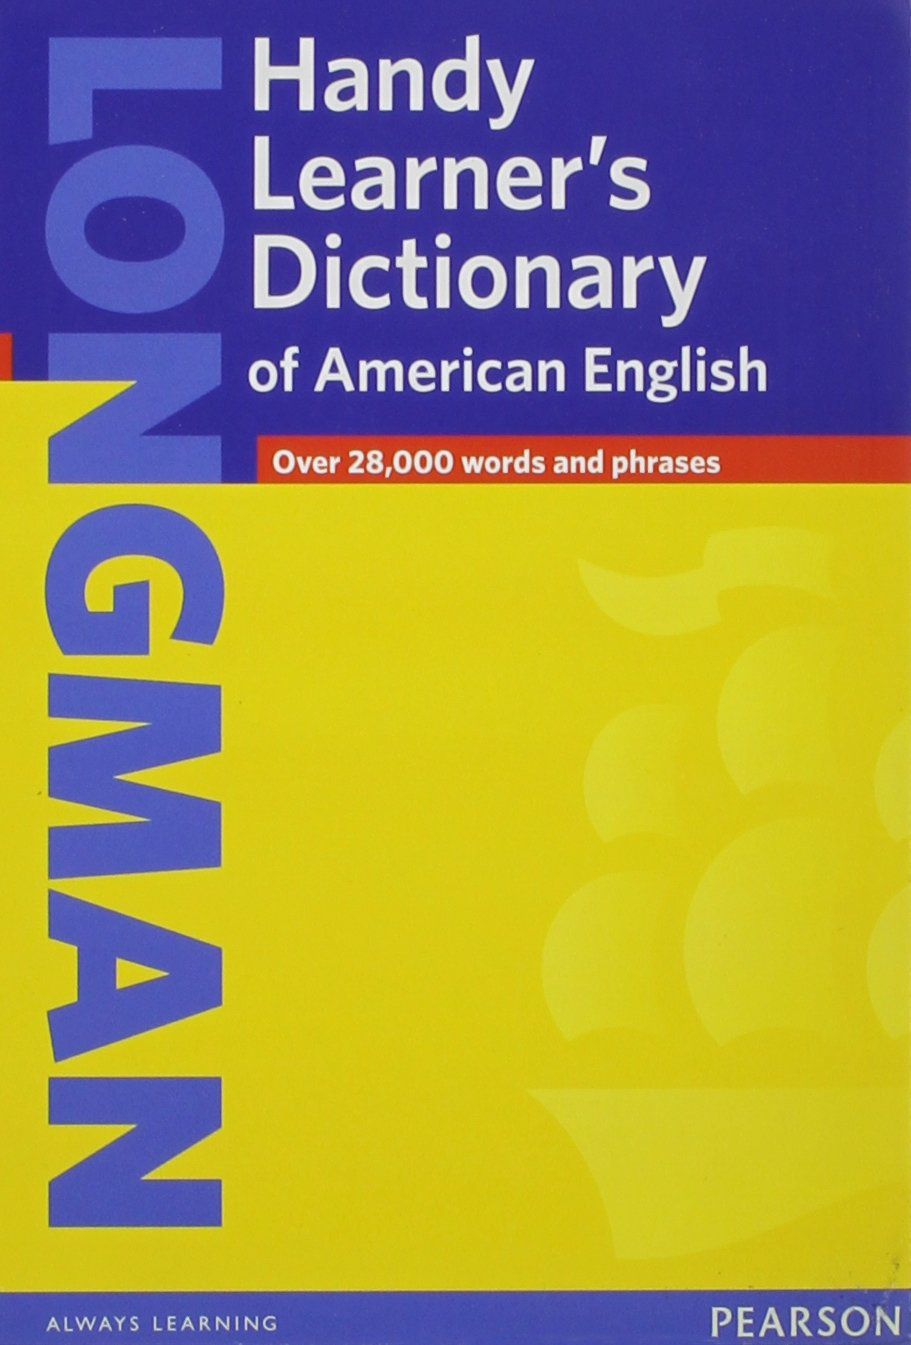 Top English Learner Dictionaries